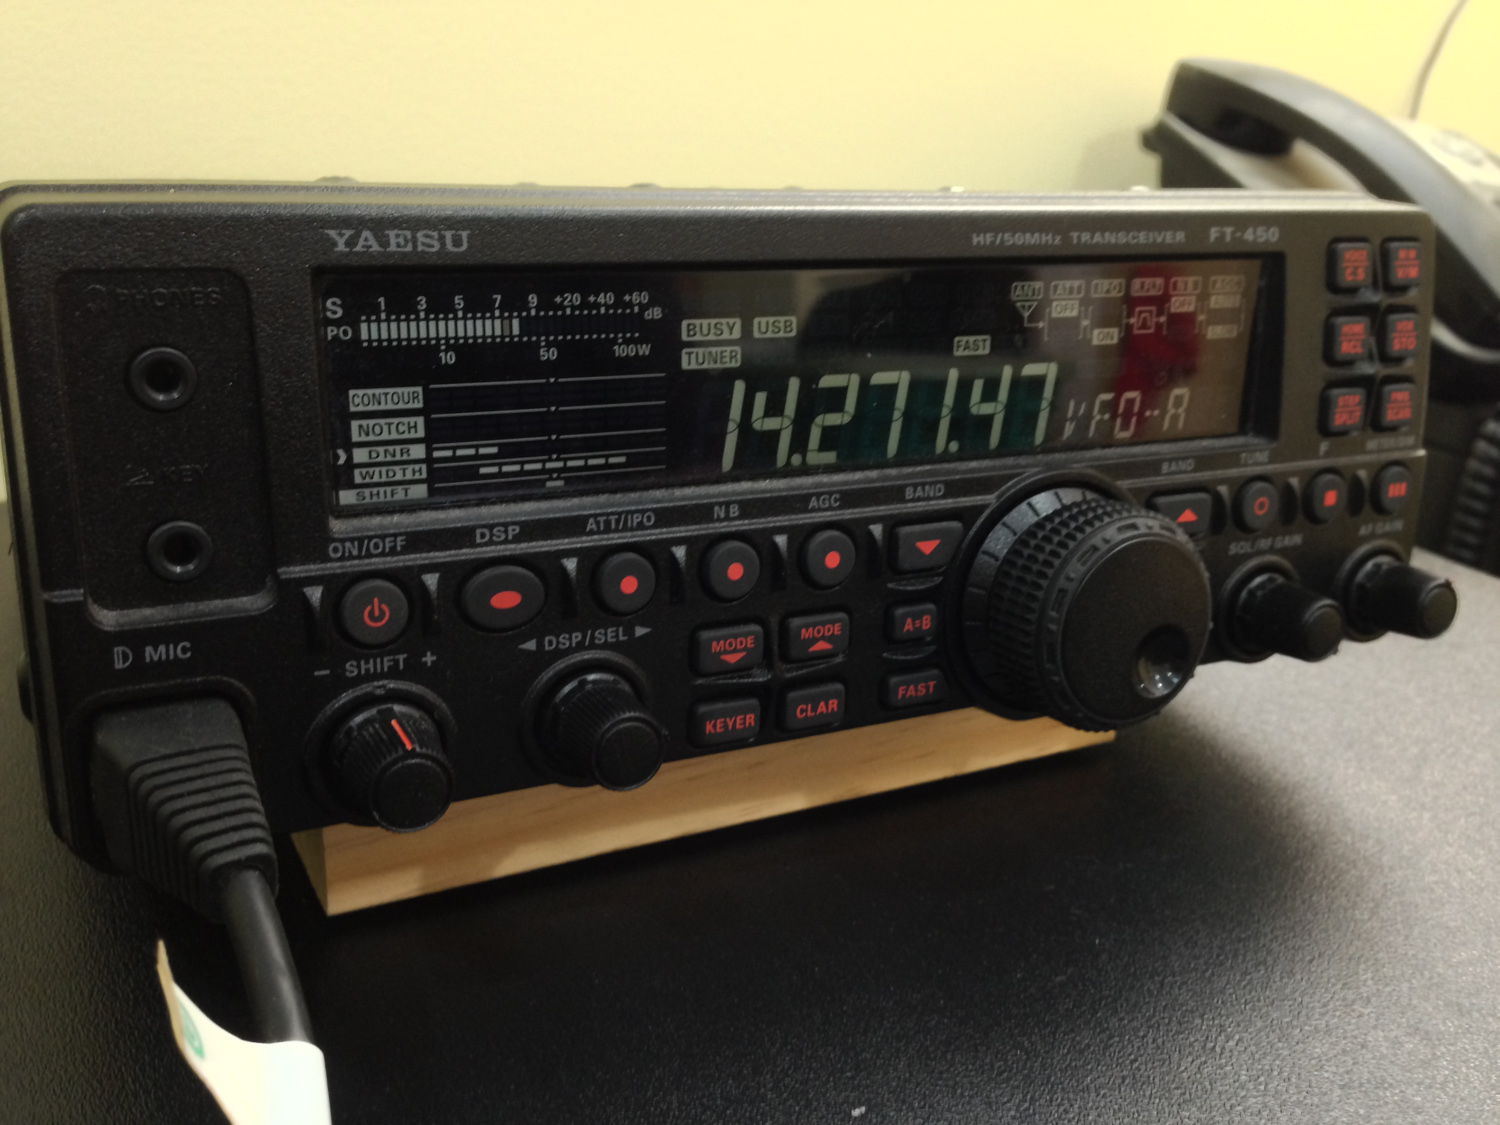 iPhone photo - FT450AT for the SSB ops